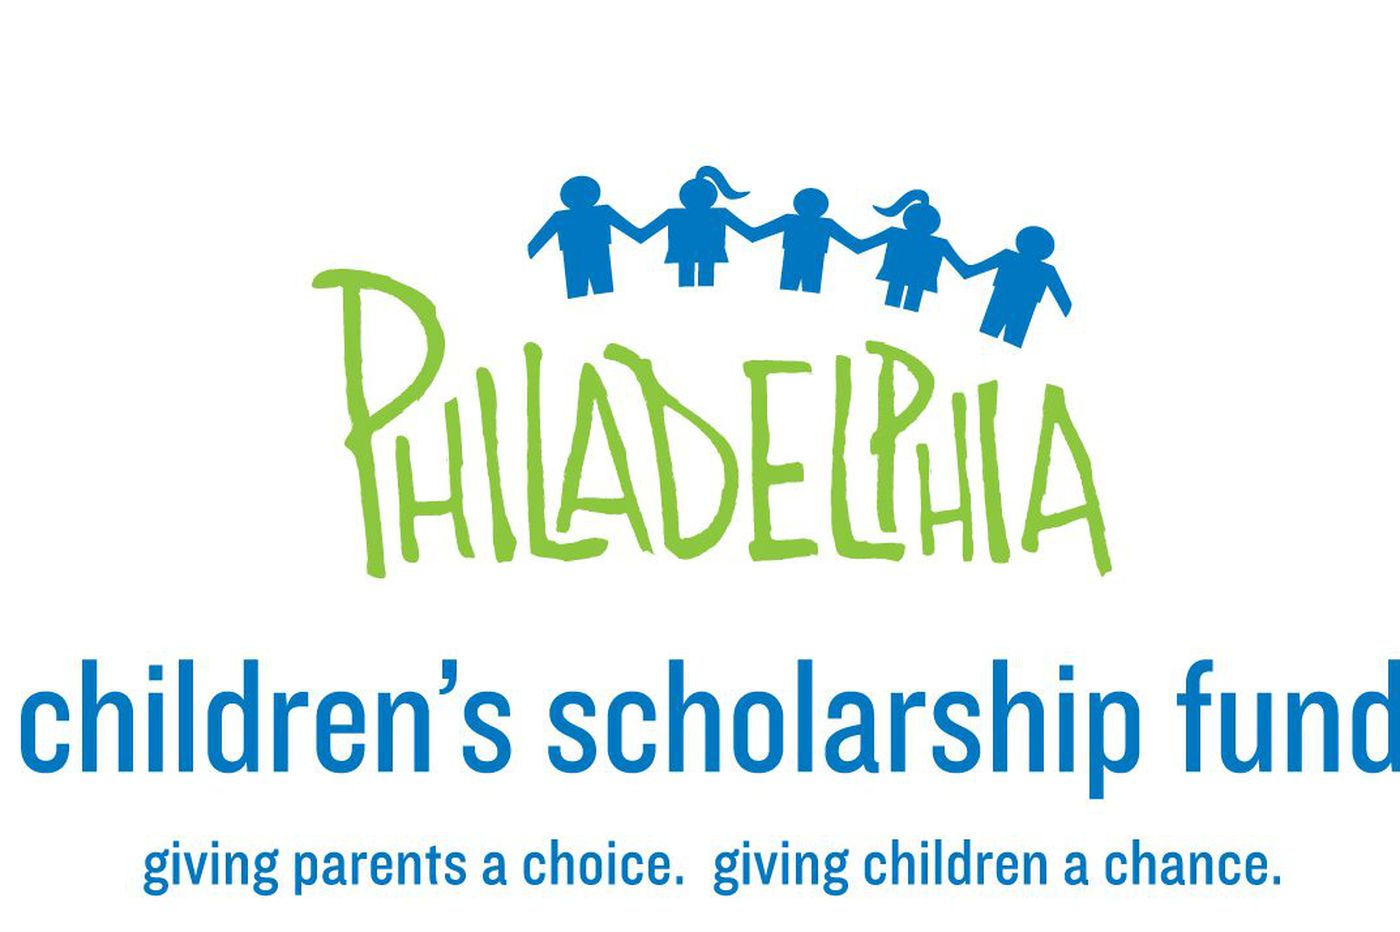 Children's Scholarship Fund to aid 2,000 city kids in 2018-19